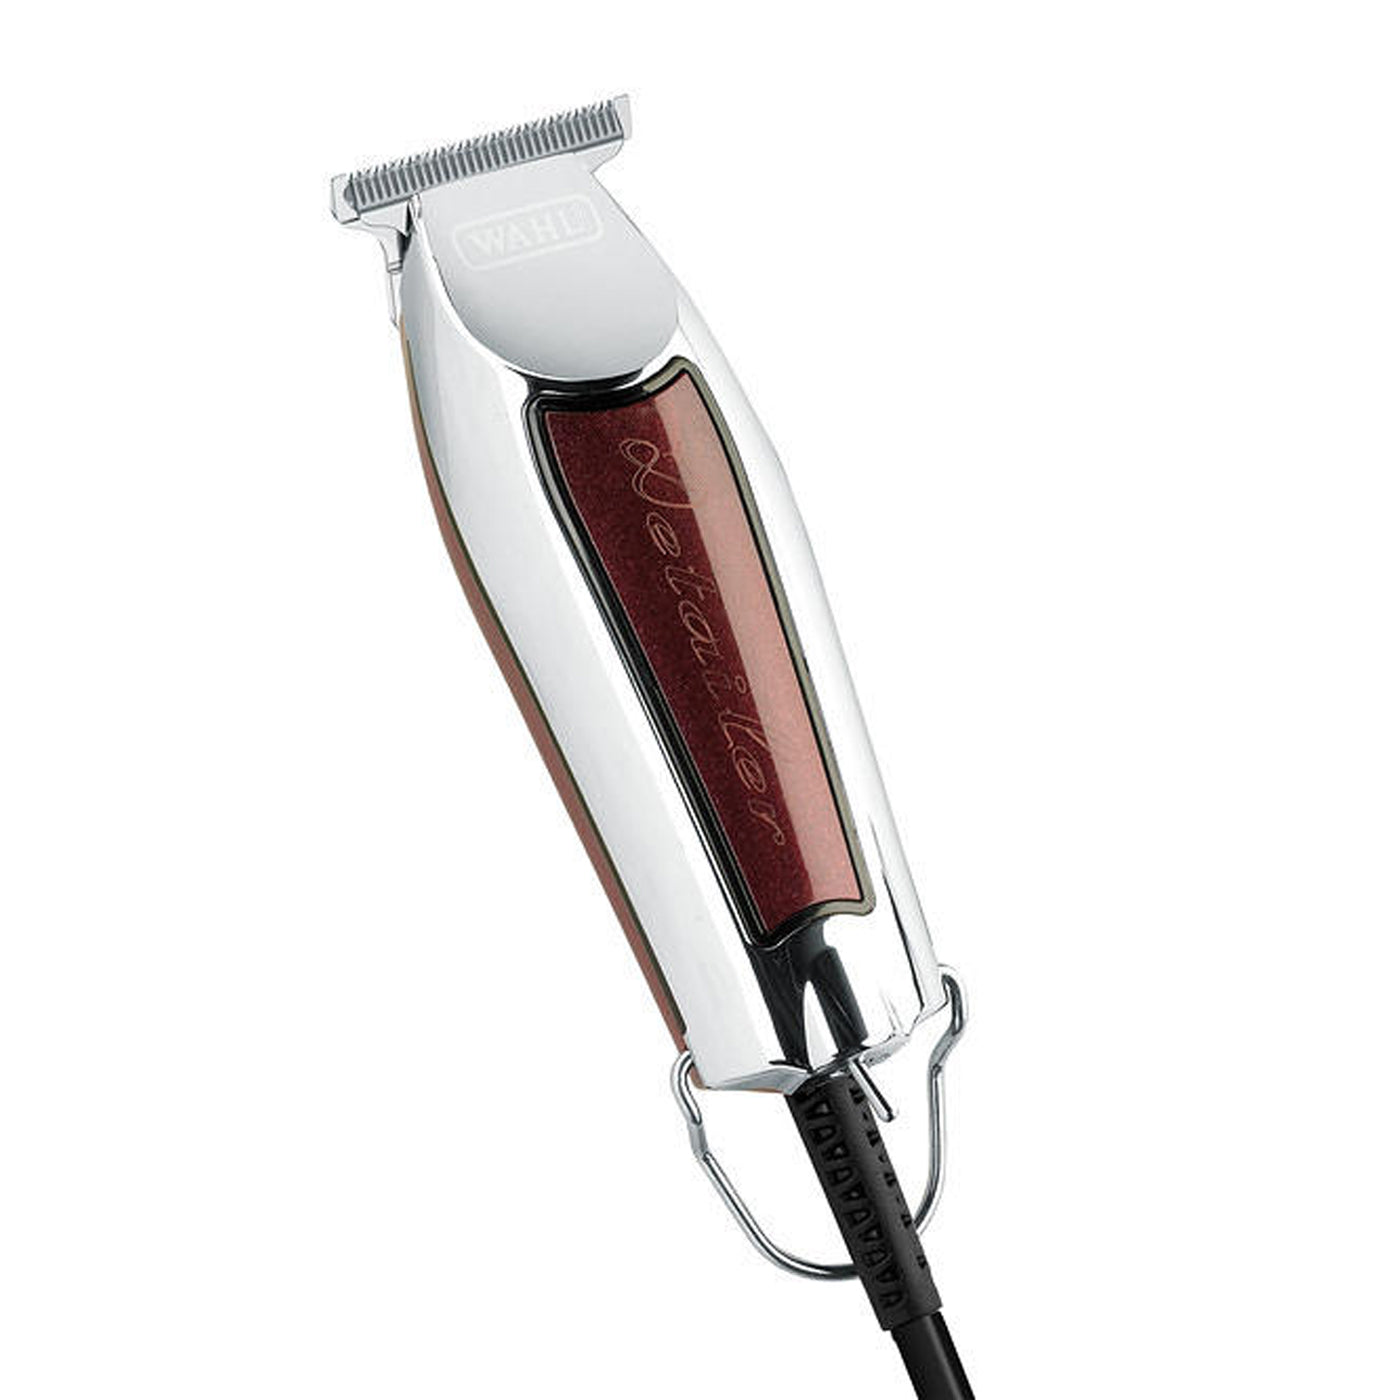 Wahl Detailer Trimmer with Extra Wide Blade